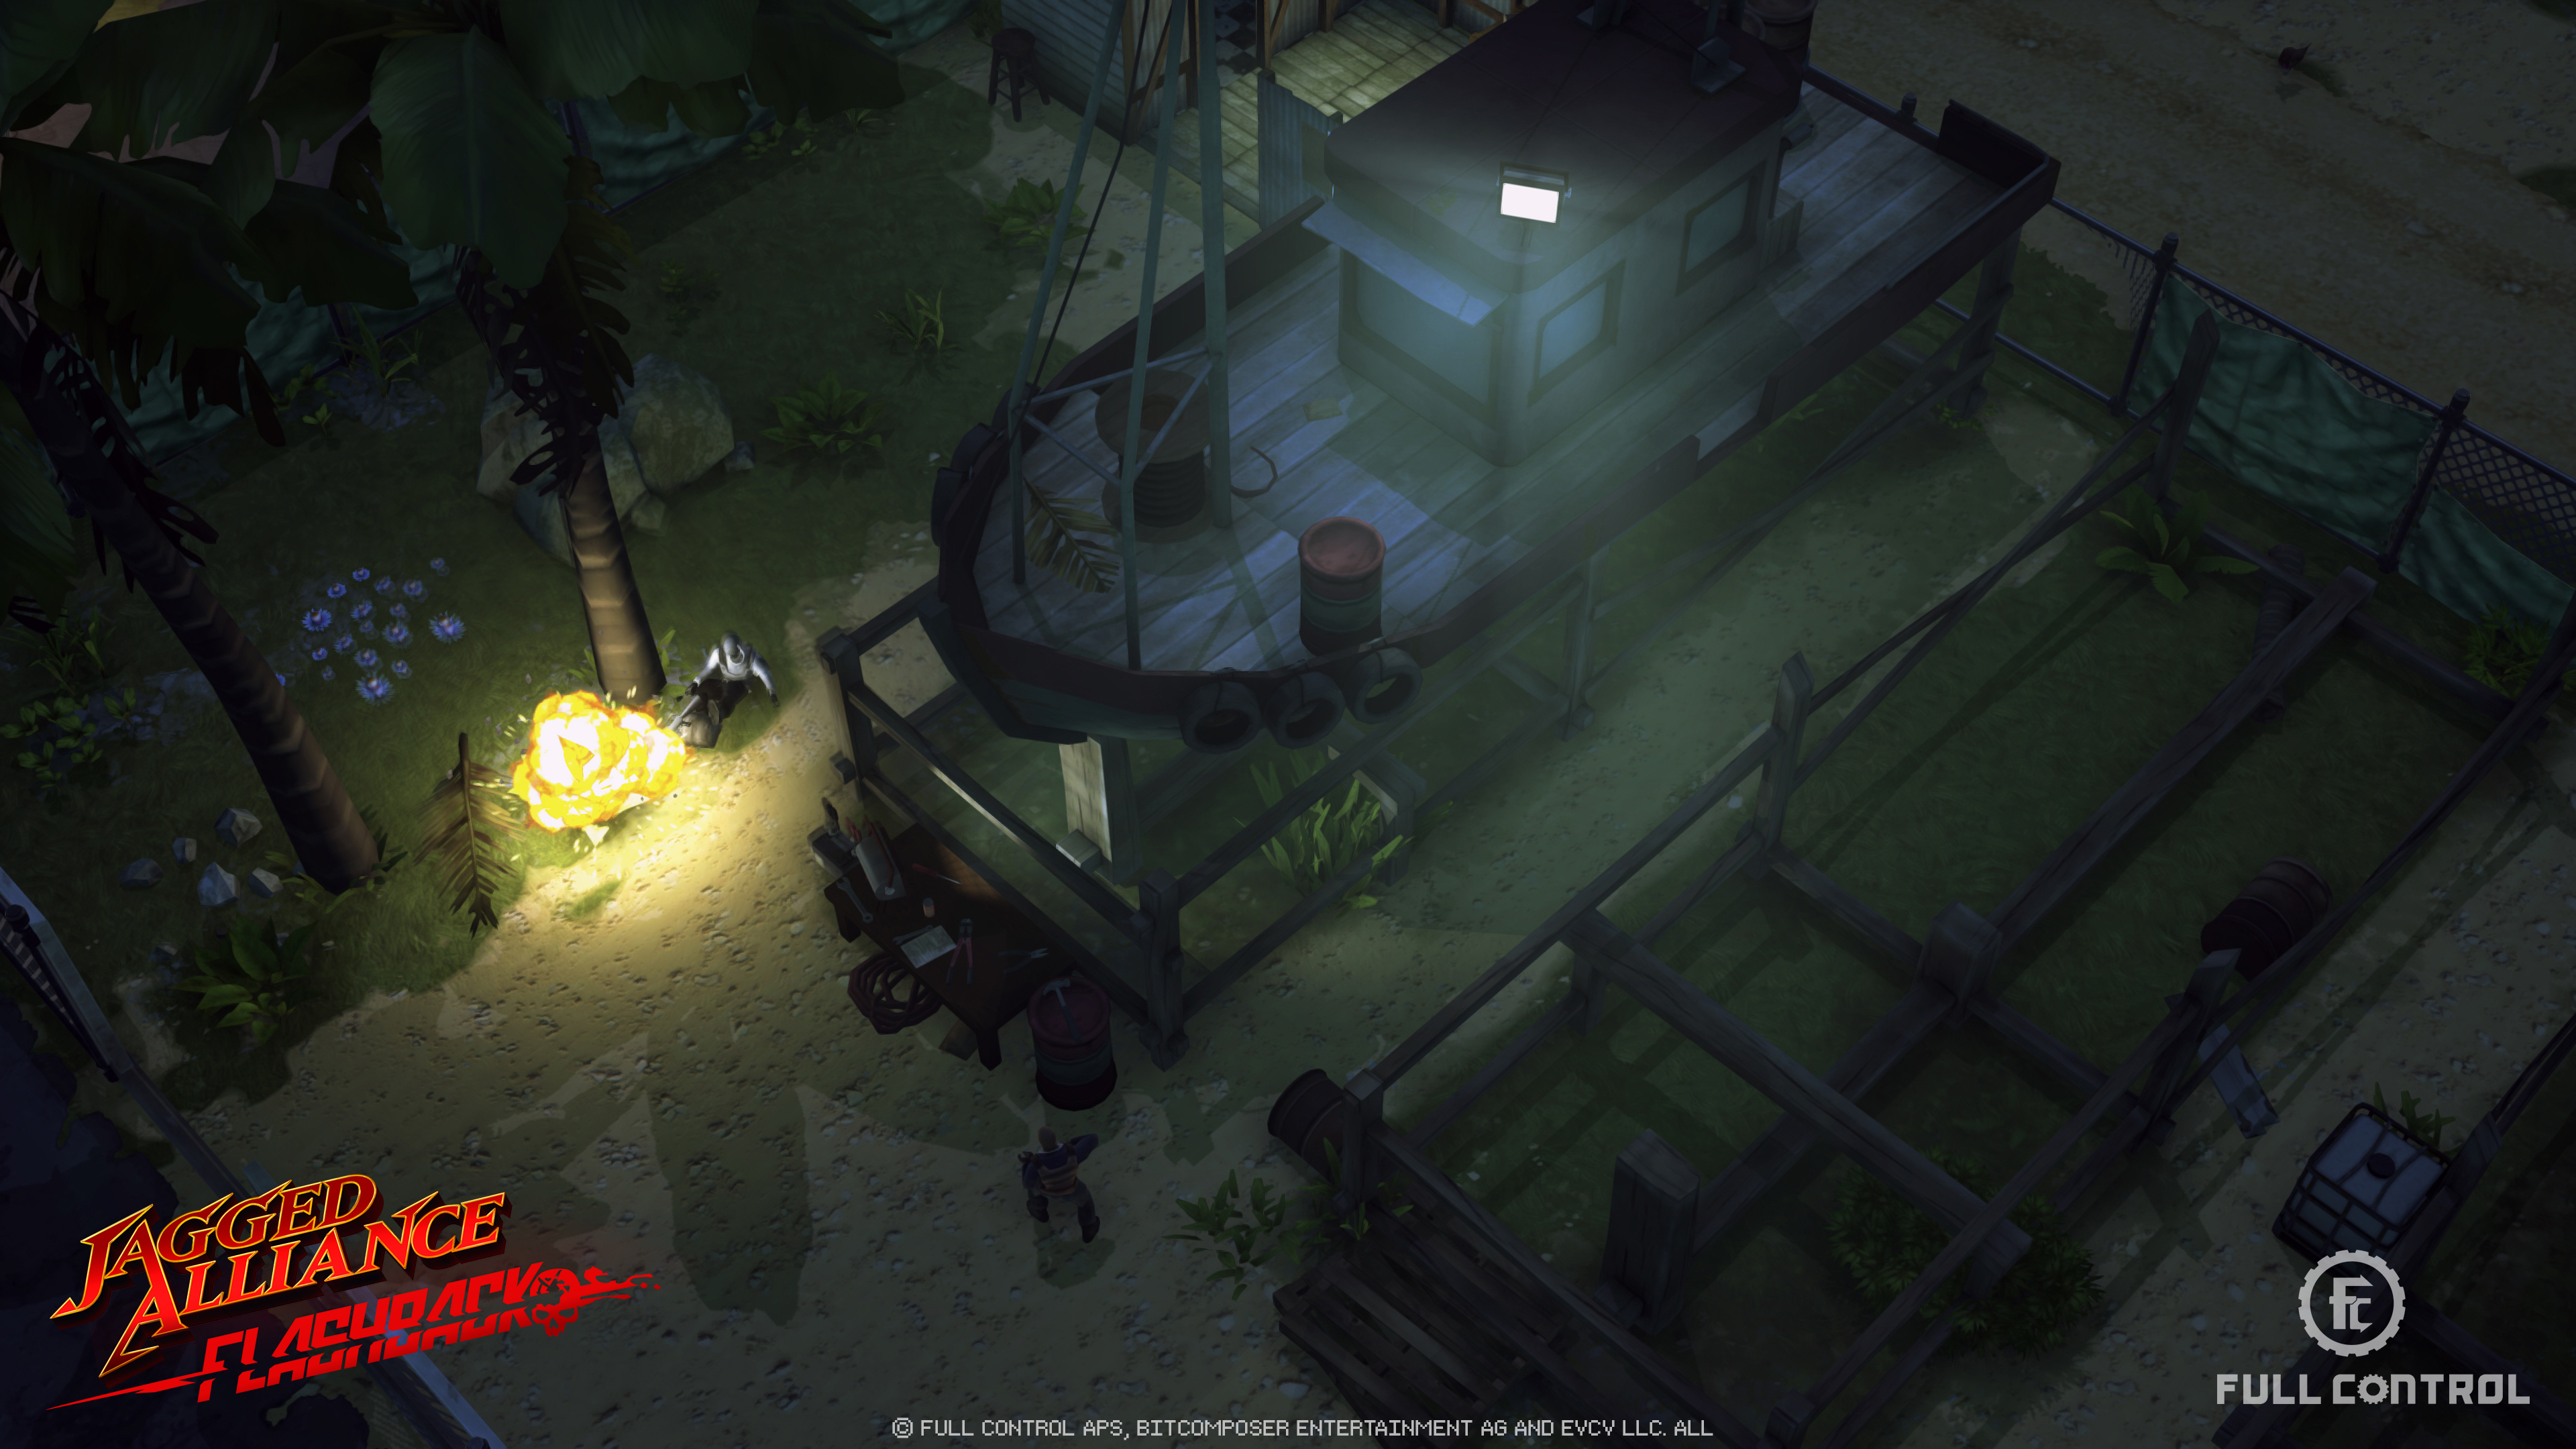 Jagged Alliance Flashback screenshot